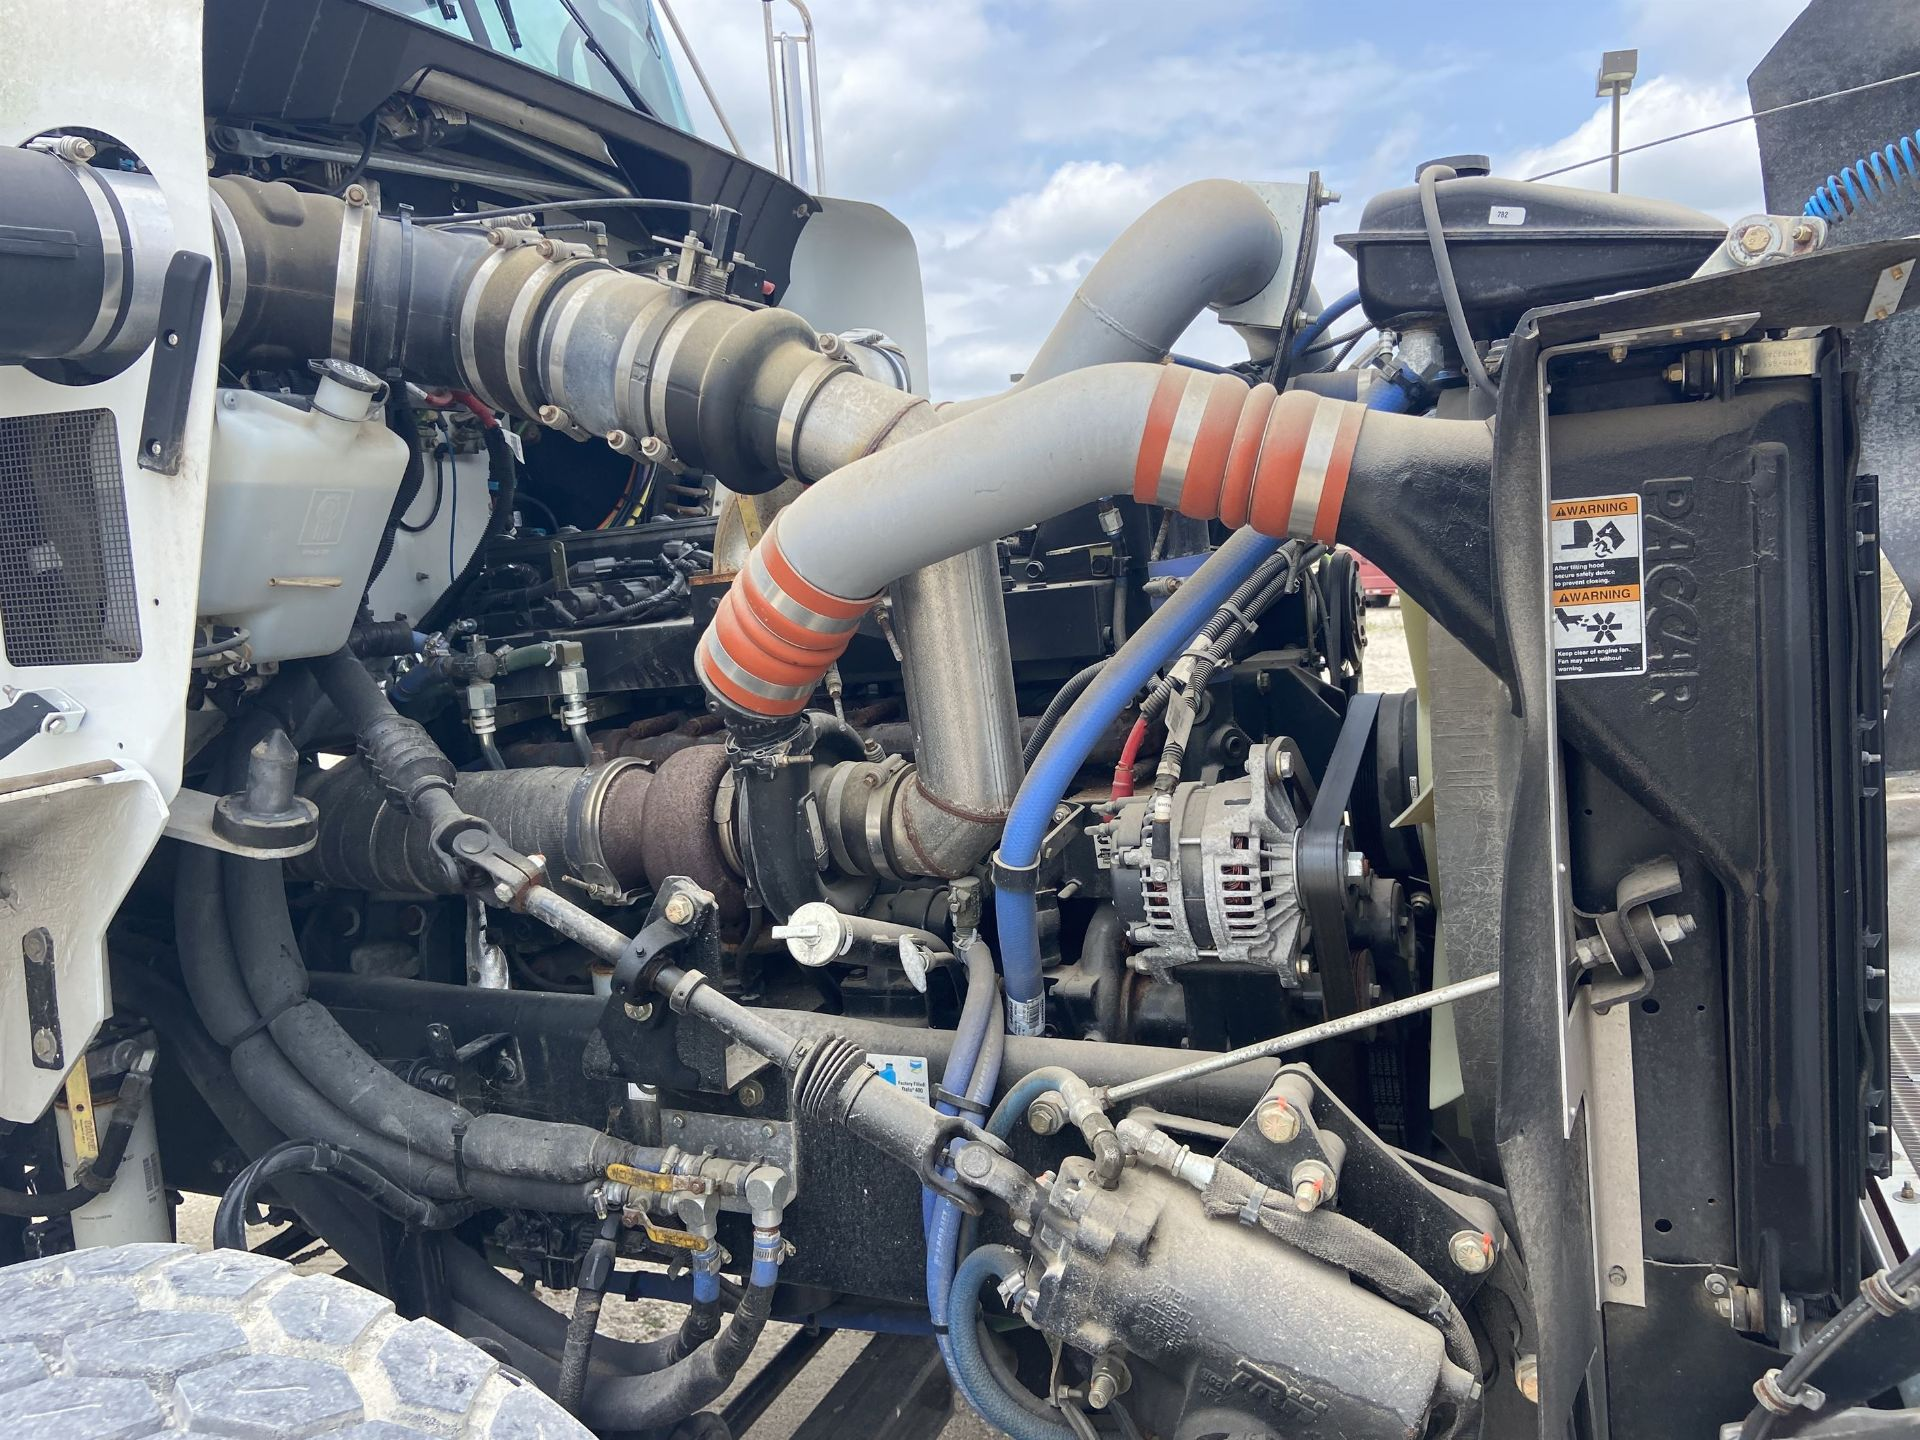 2015 KENWORTH T800 Cab and Chassis, VIN # 1NKDL00X2FR451214, 379 HP ISME 385 Engine, FRO14210C - Image 18 of 24